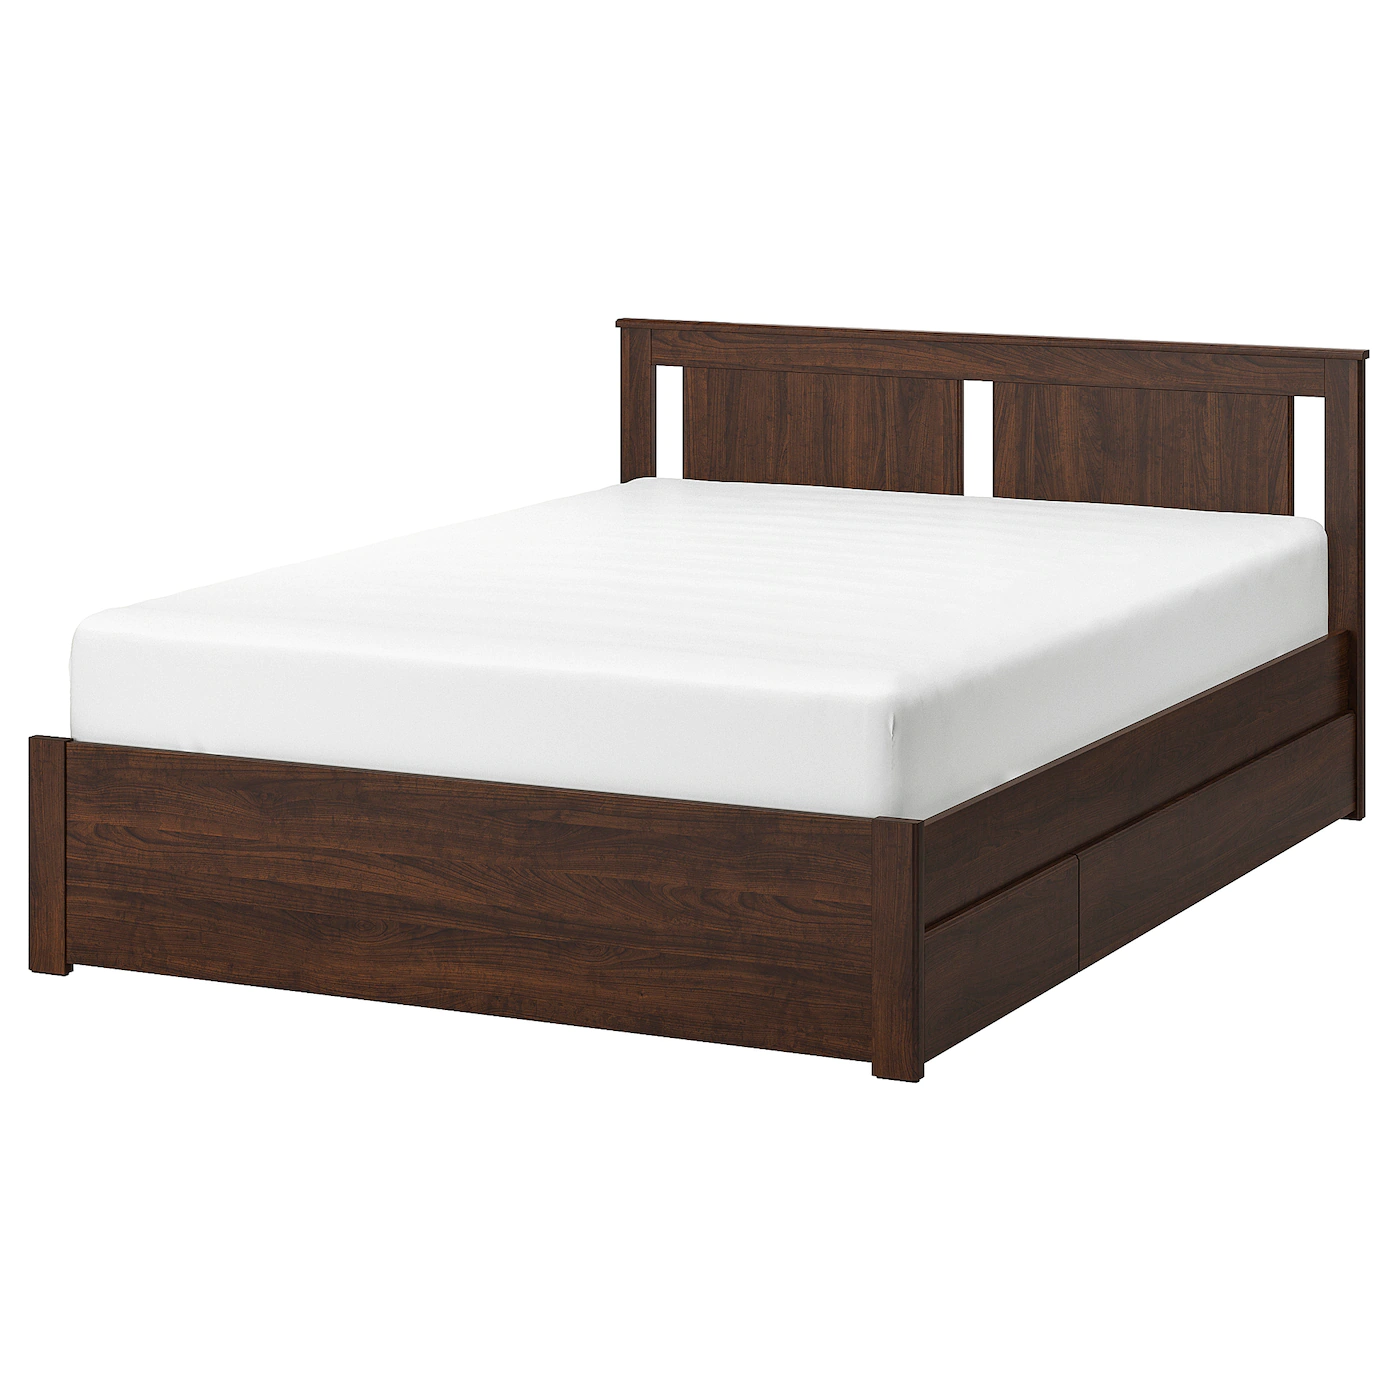 Songesand IKEA Beds, Komnit Furniture in 2020 Bed